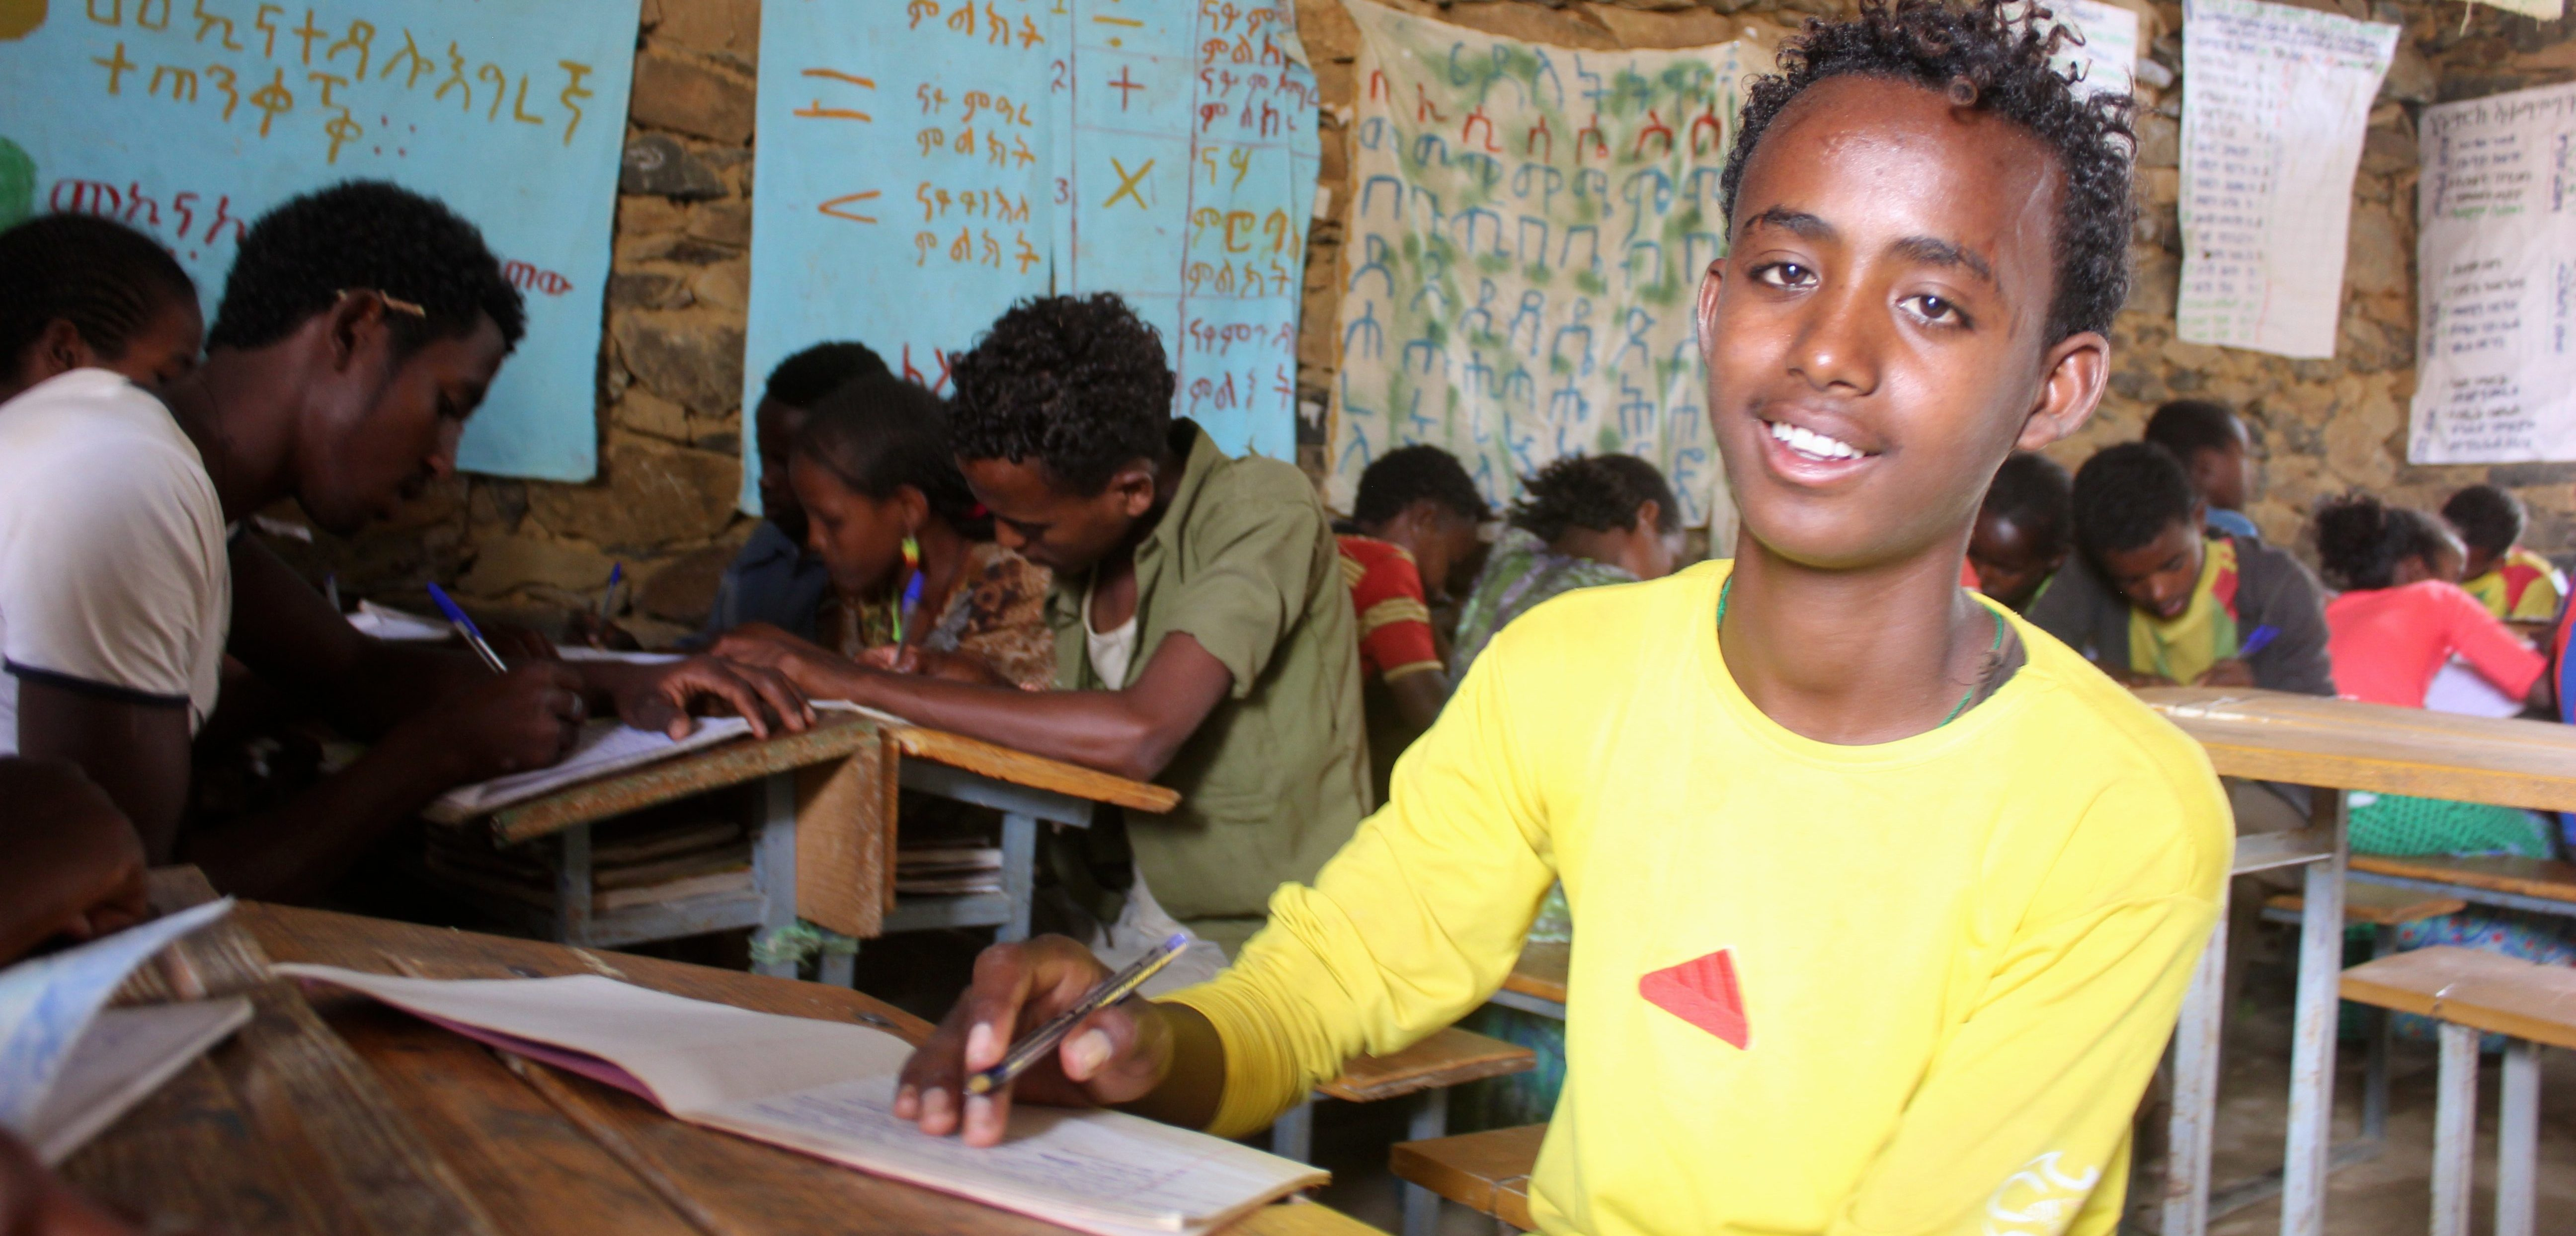 A daily school routine in Ethiopia